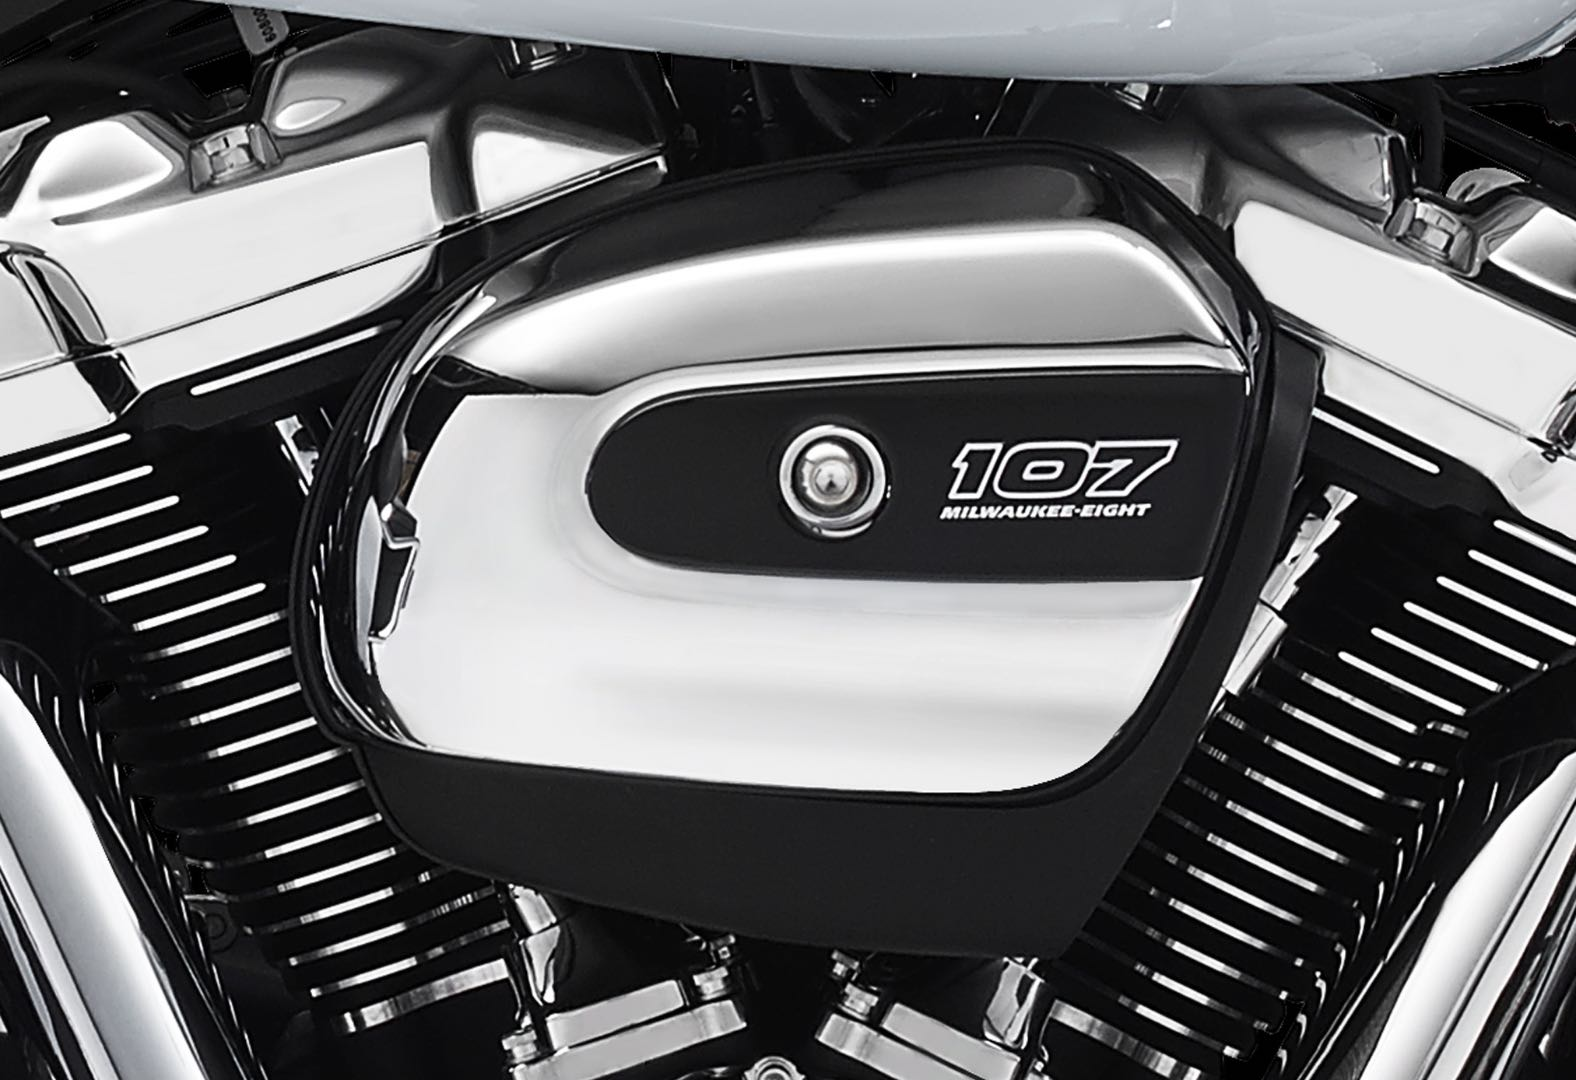 Harley Milwaukee-Eight 107 Air Cleaner